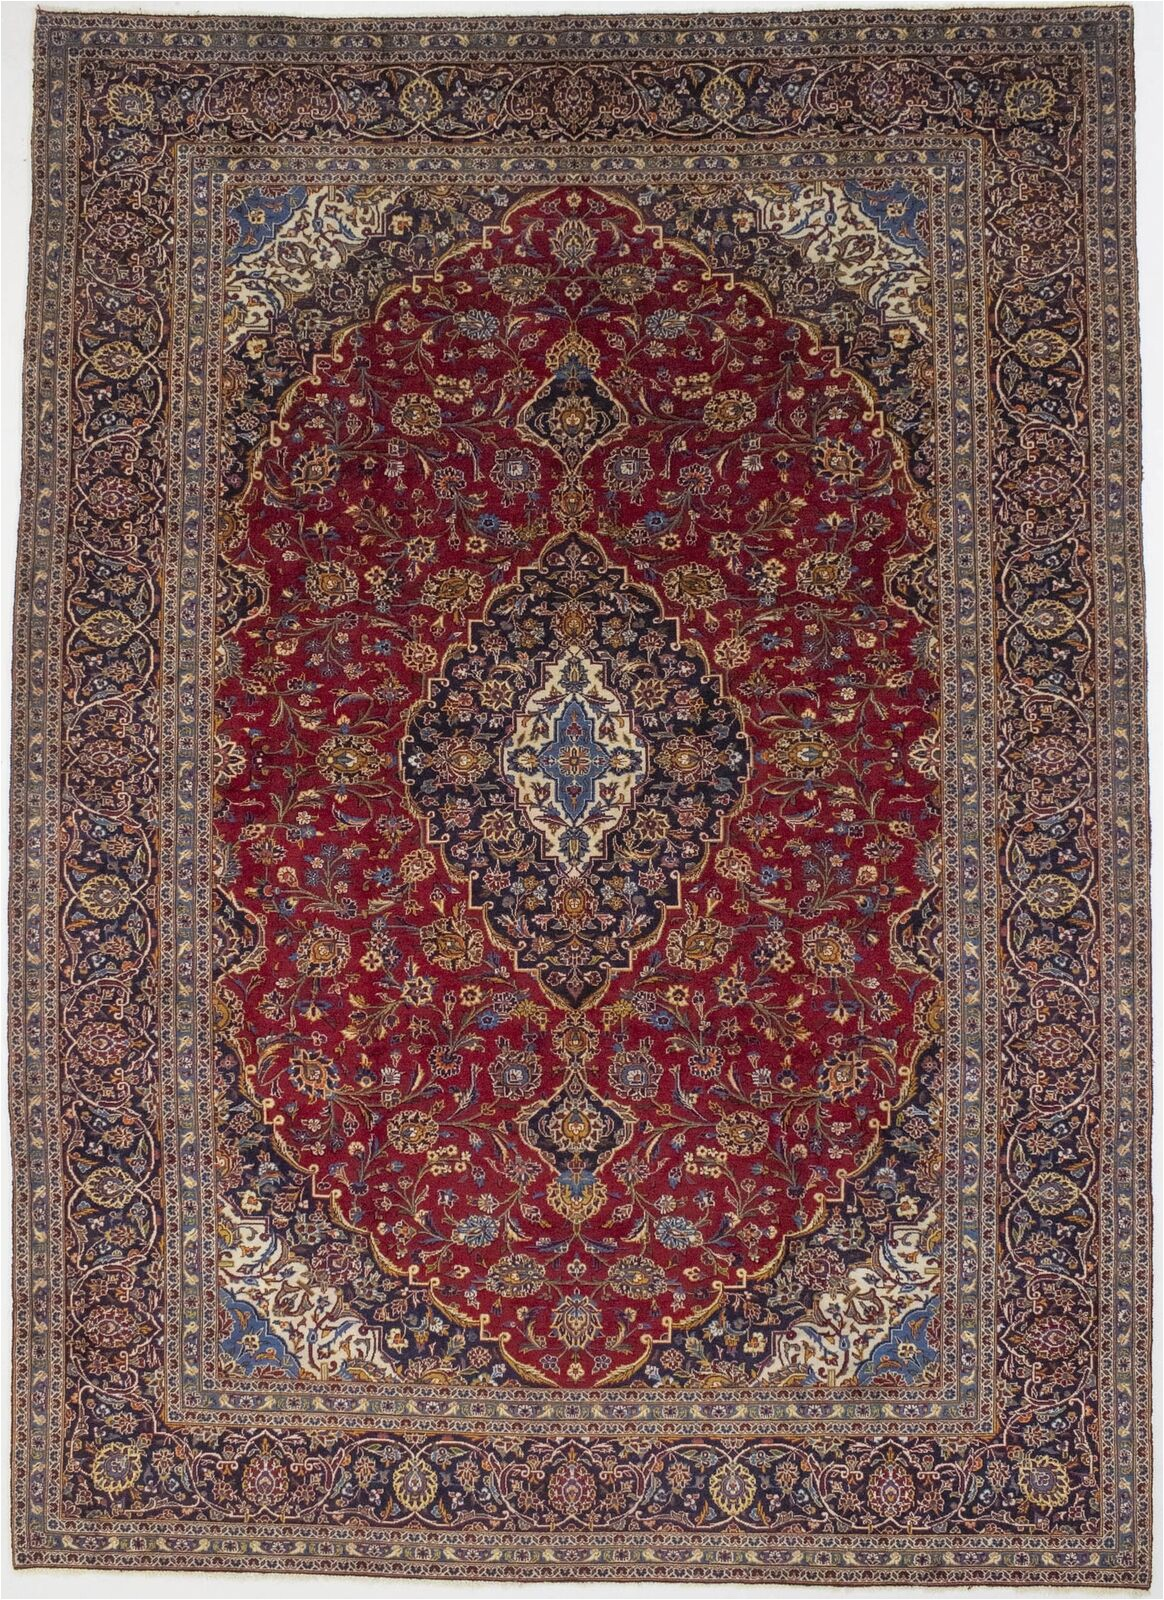 Nuloom Handmade Bold Abstract Floral Wool area Rug 10×14 Vintage Classic Floral Wool Handmade Red oriental Rug Home Carpet 9 7×13 6